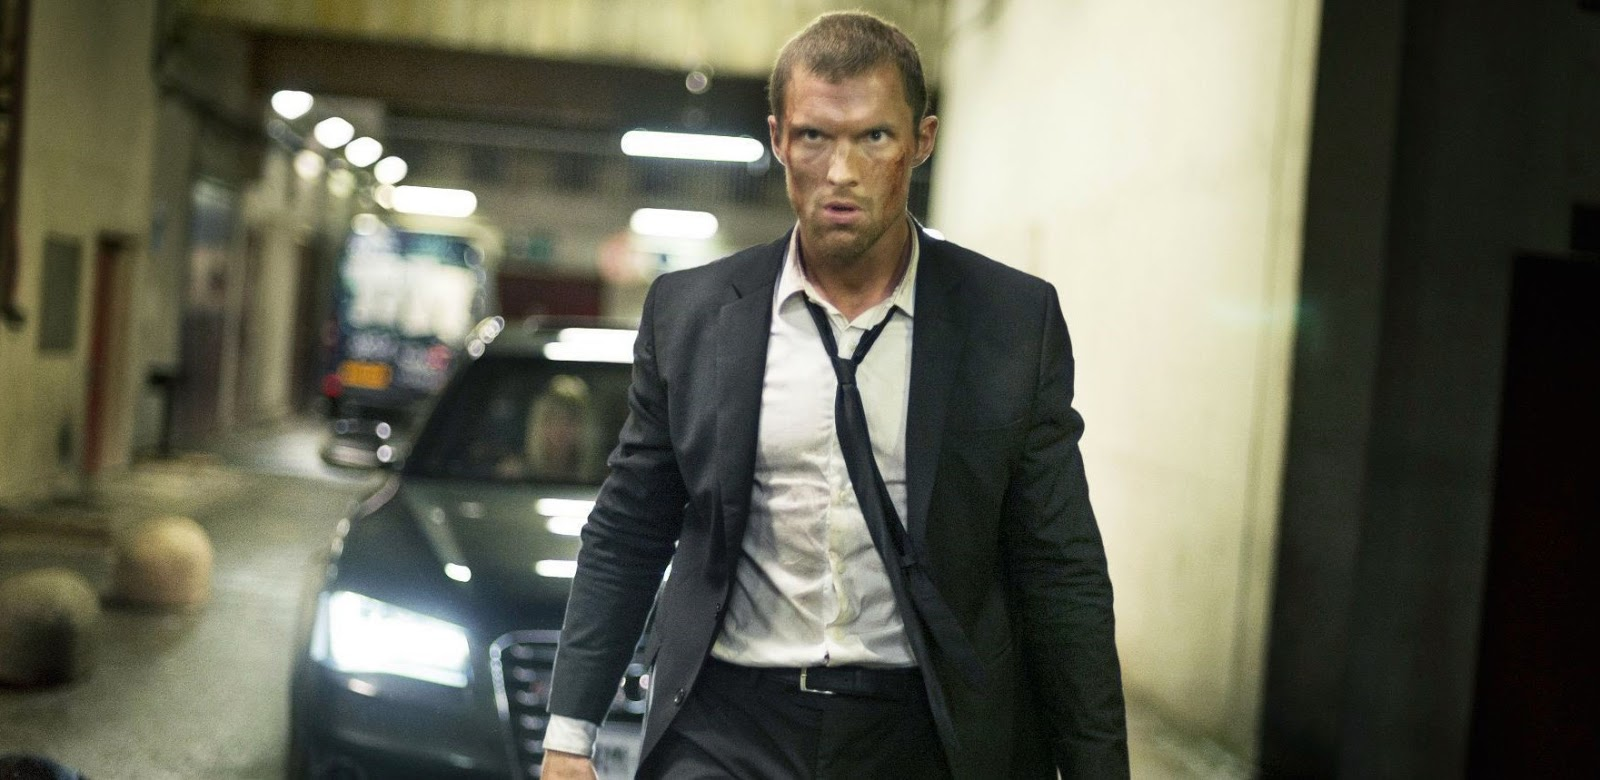 The Transporter Refueled | Assista ao trailer do reincio de Carga Explosiva, sem Jason Statham